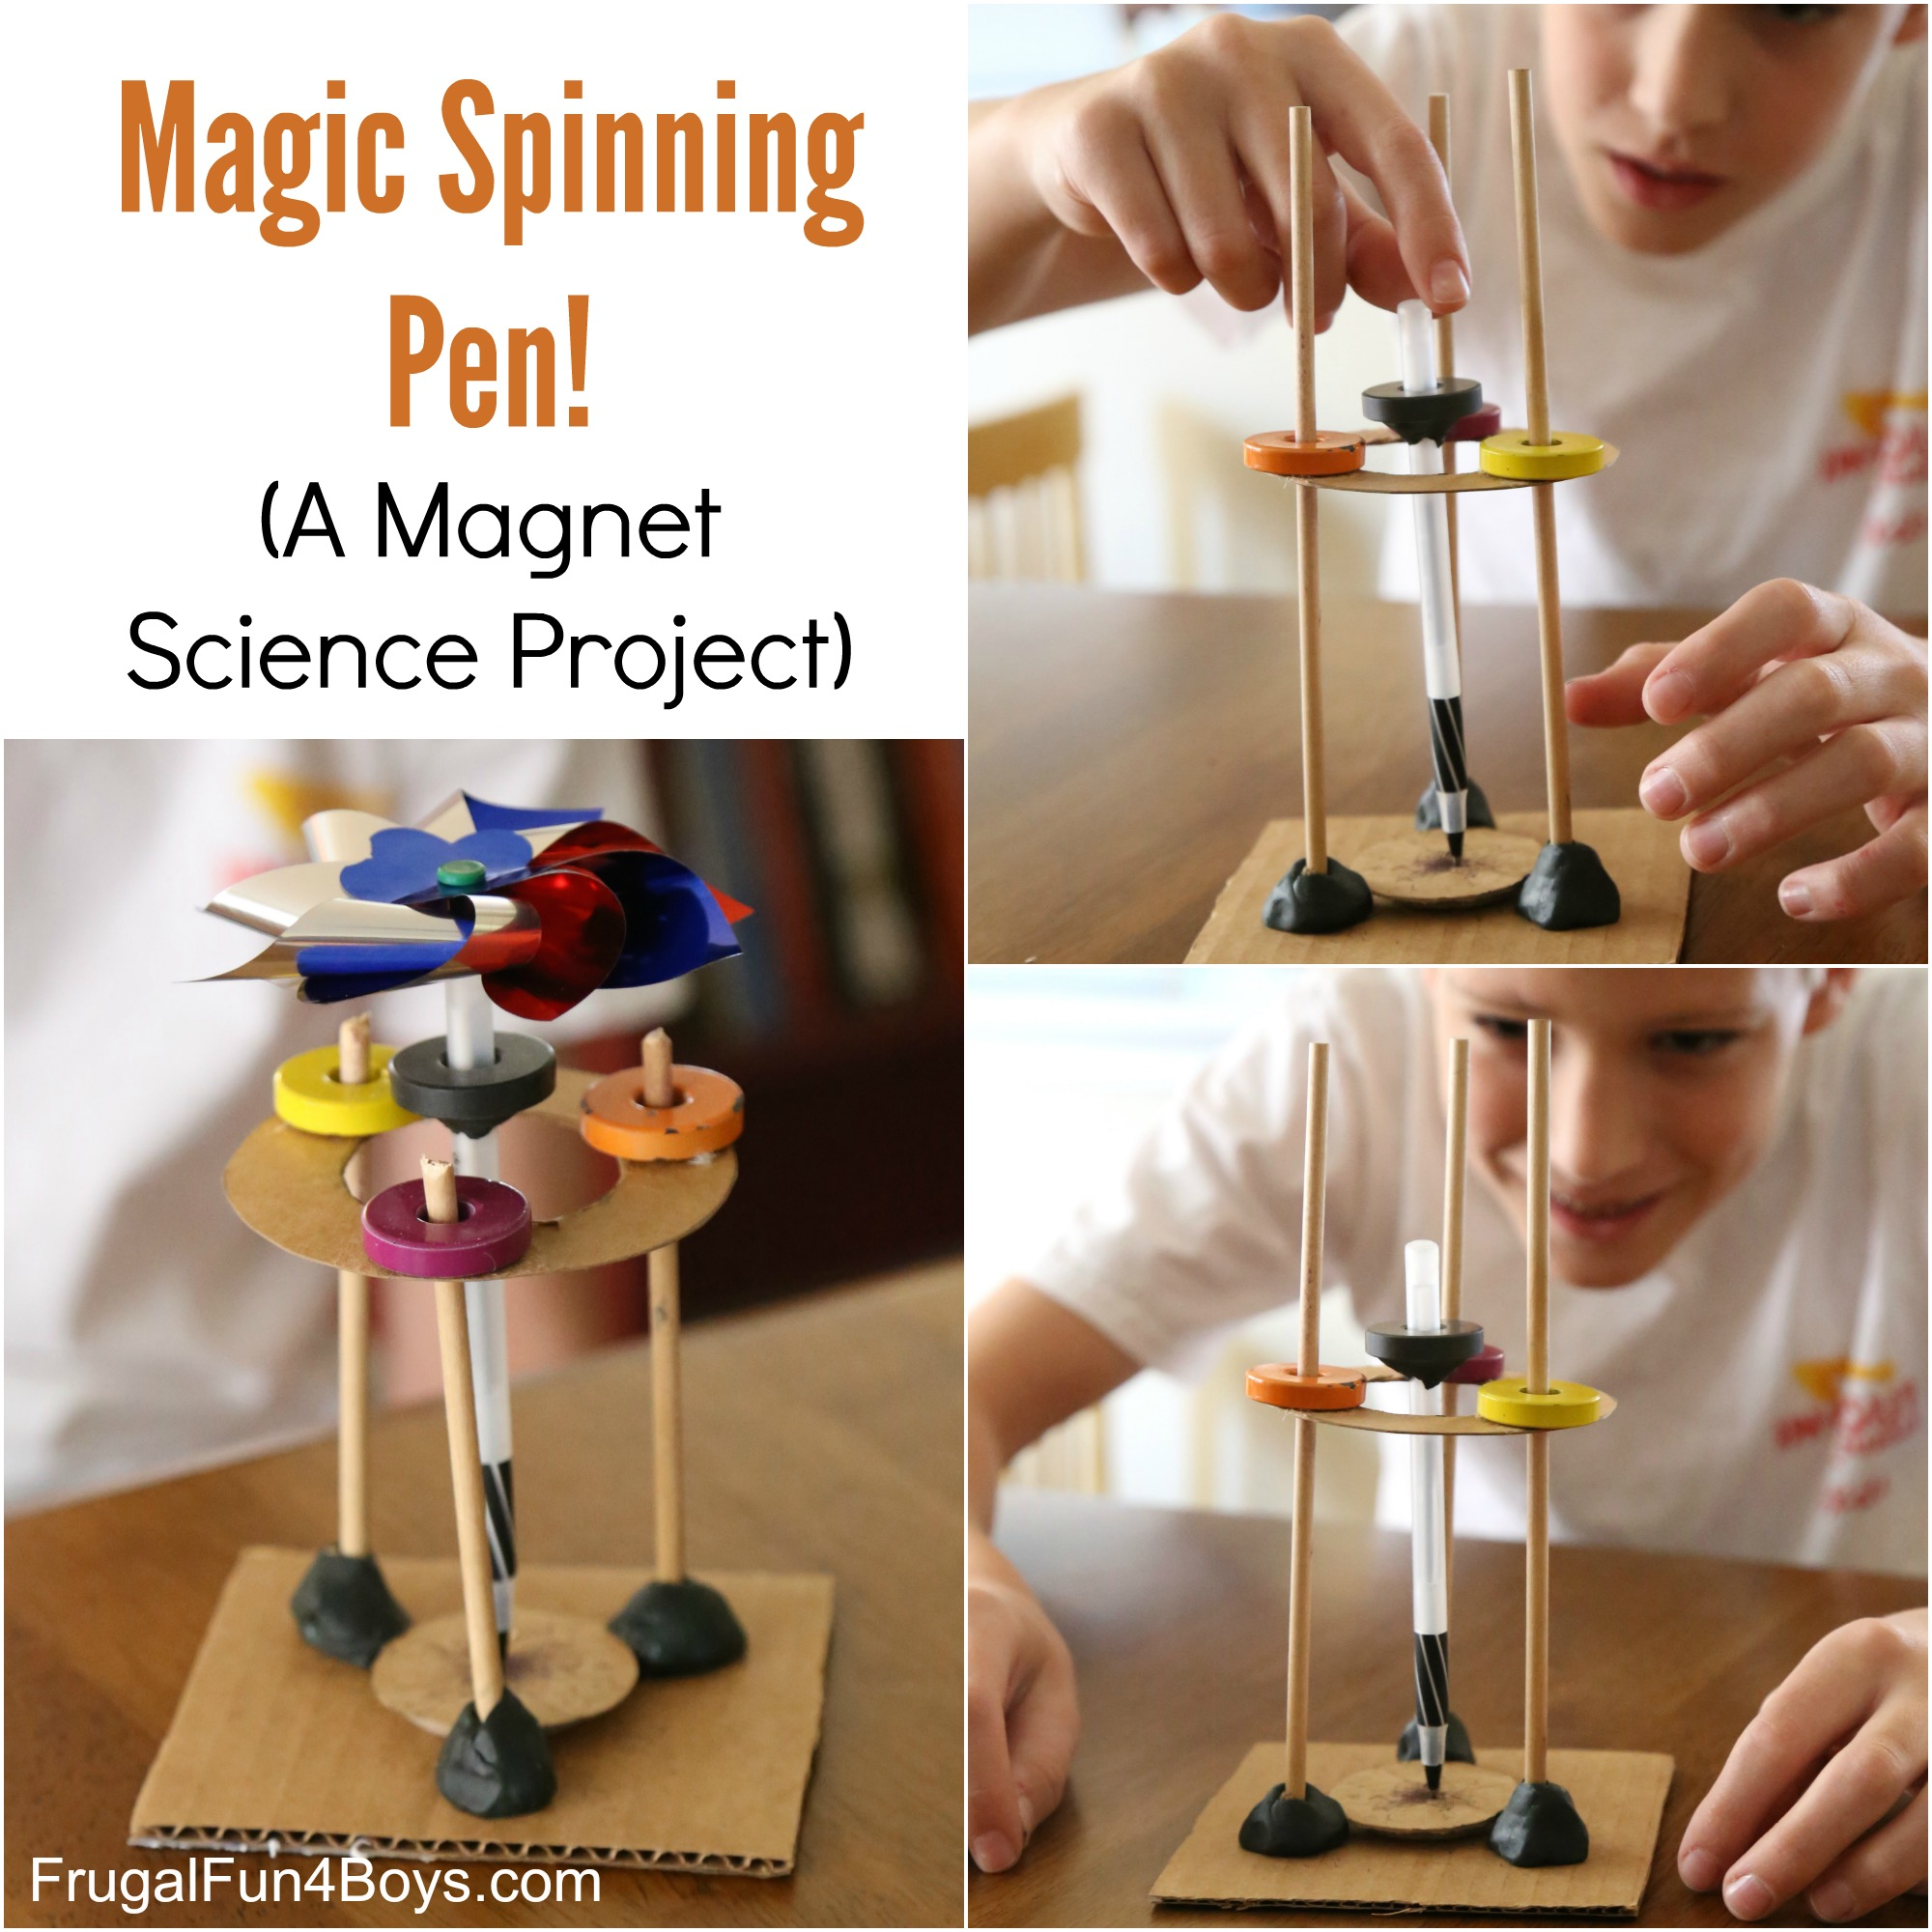 Magic Spinning Pen! A Magnet Science Experiment for Kids